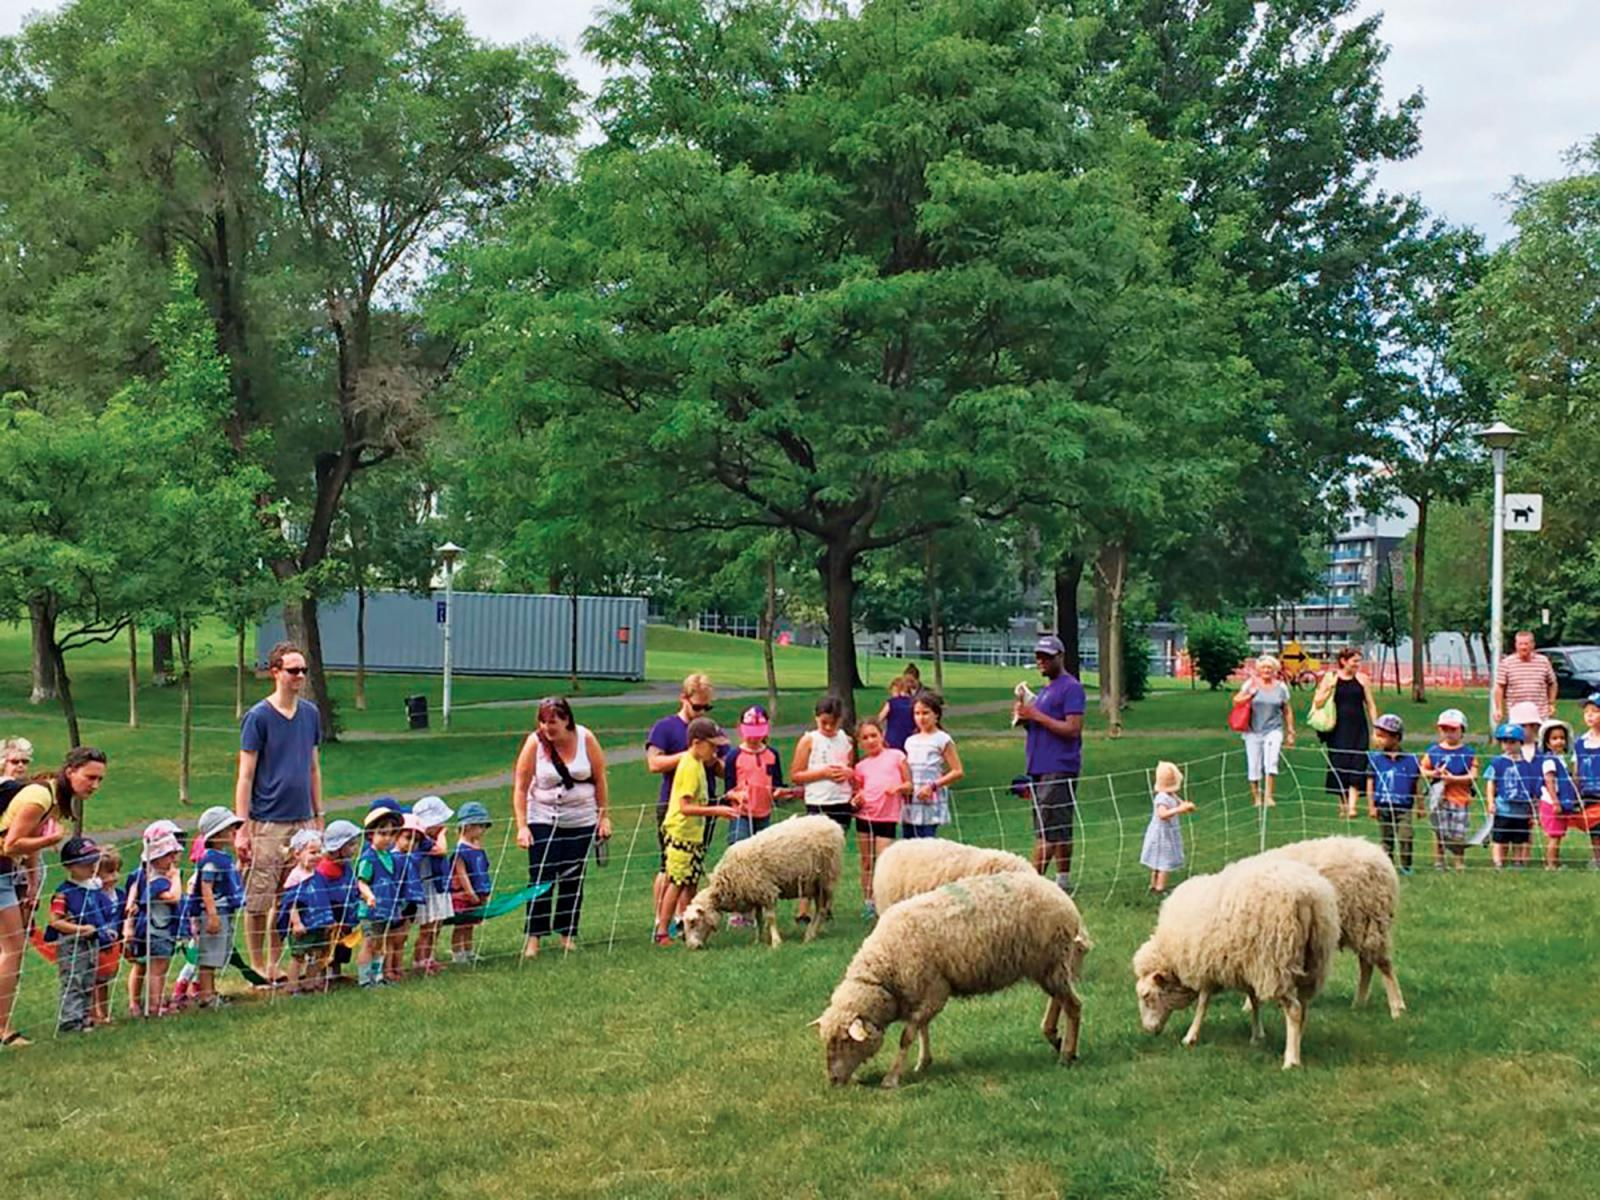 Sheep maintaining the turf at parks  in Montreal are introducing families to urban farming.